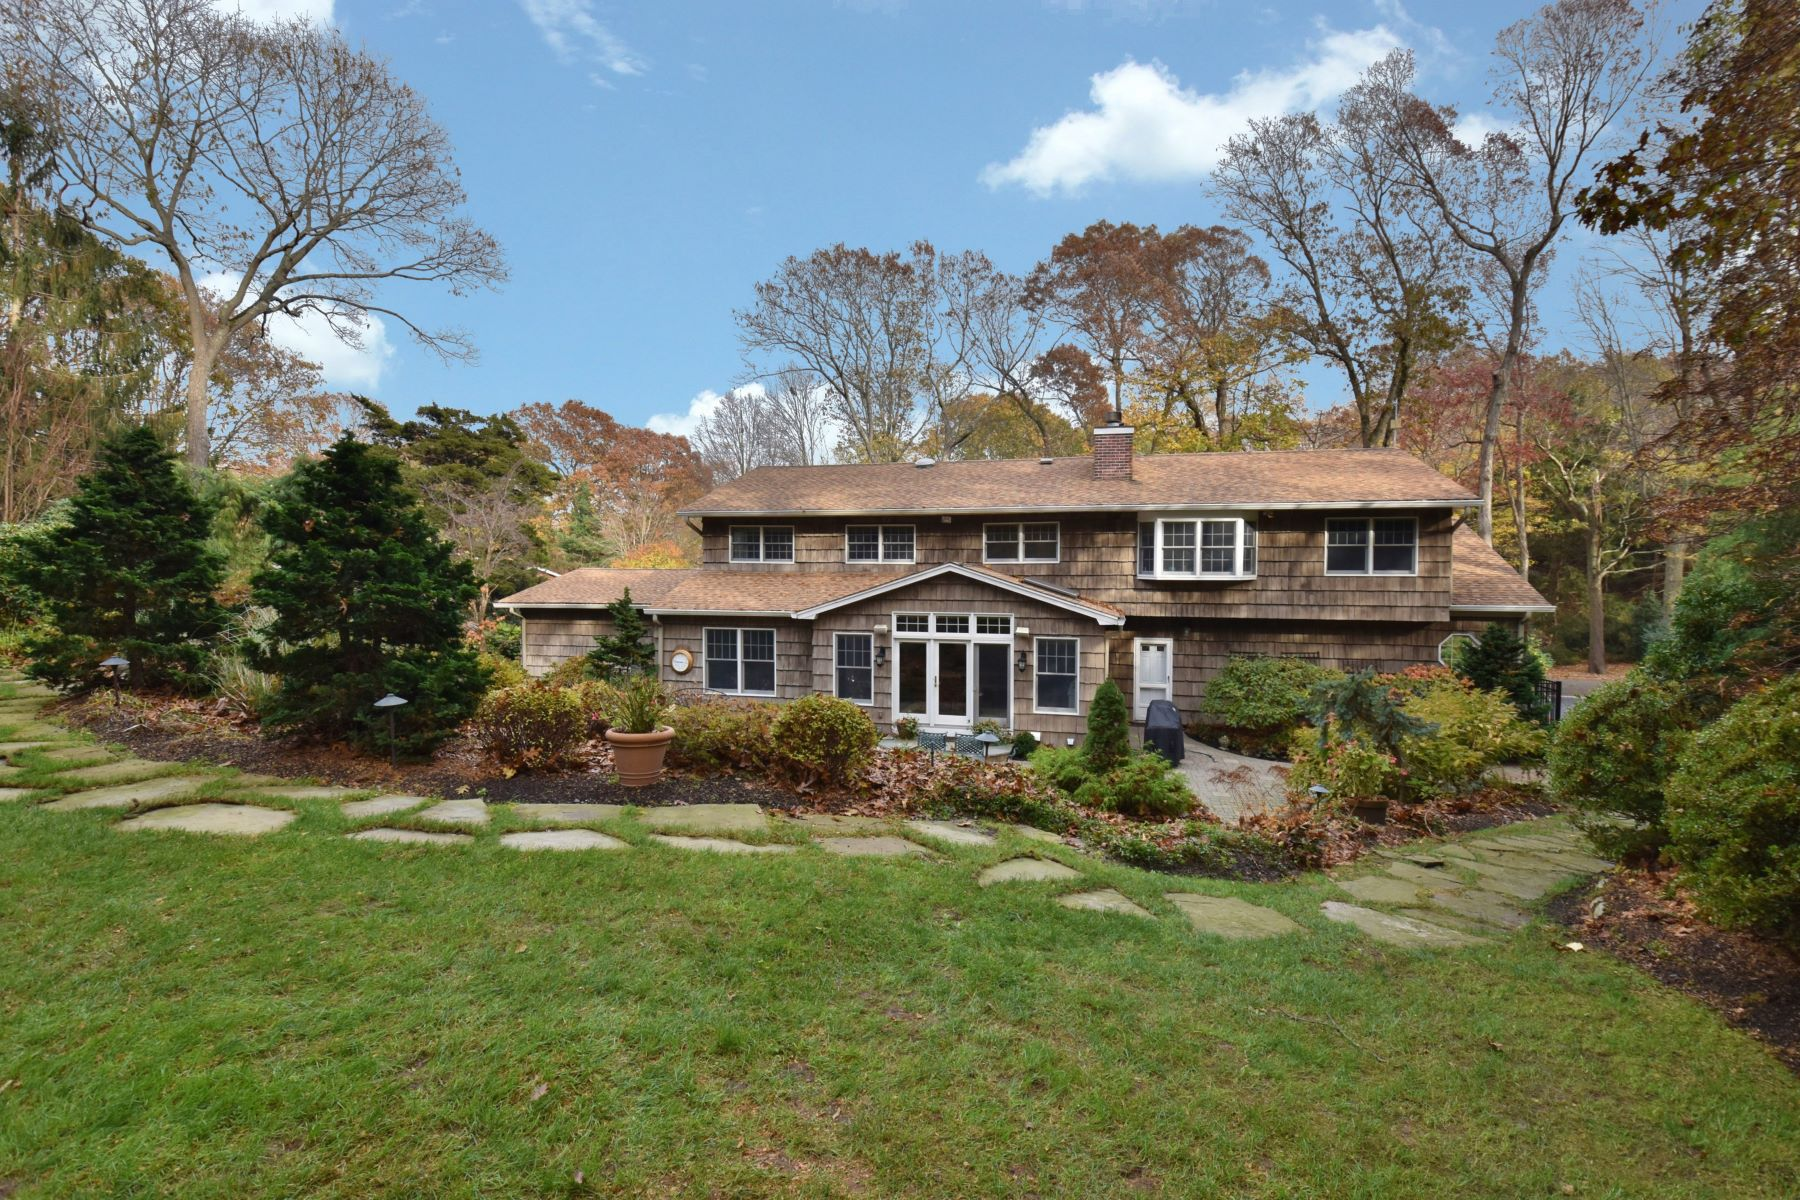 Single Family Homes for Active at Northport 18 Truxton Ln Northport, New York 11768 United States